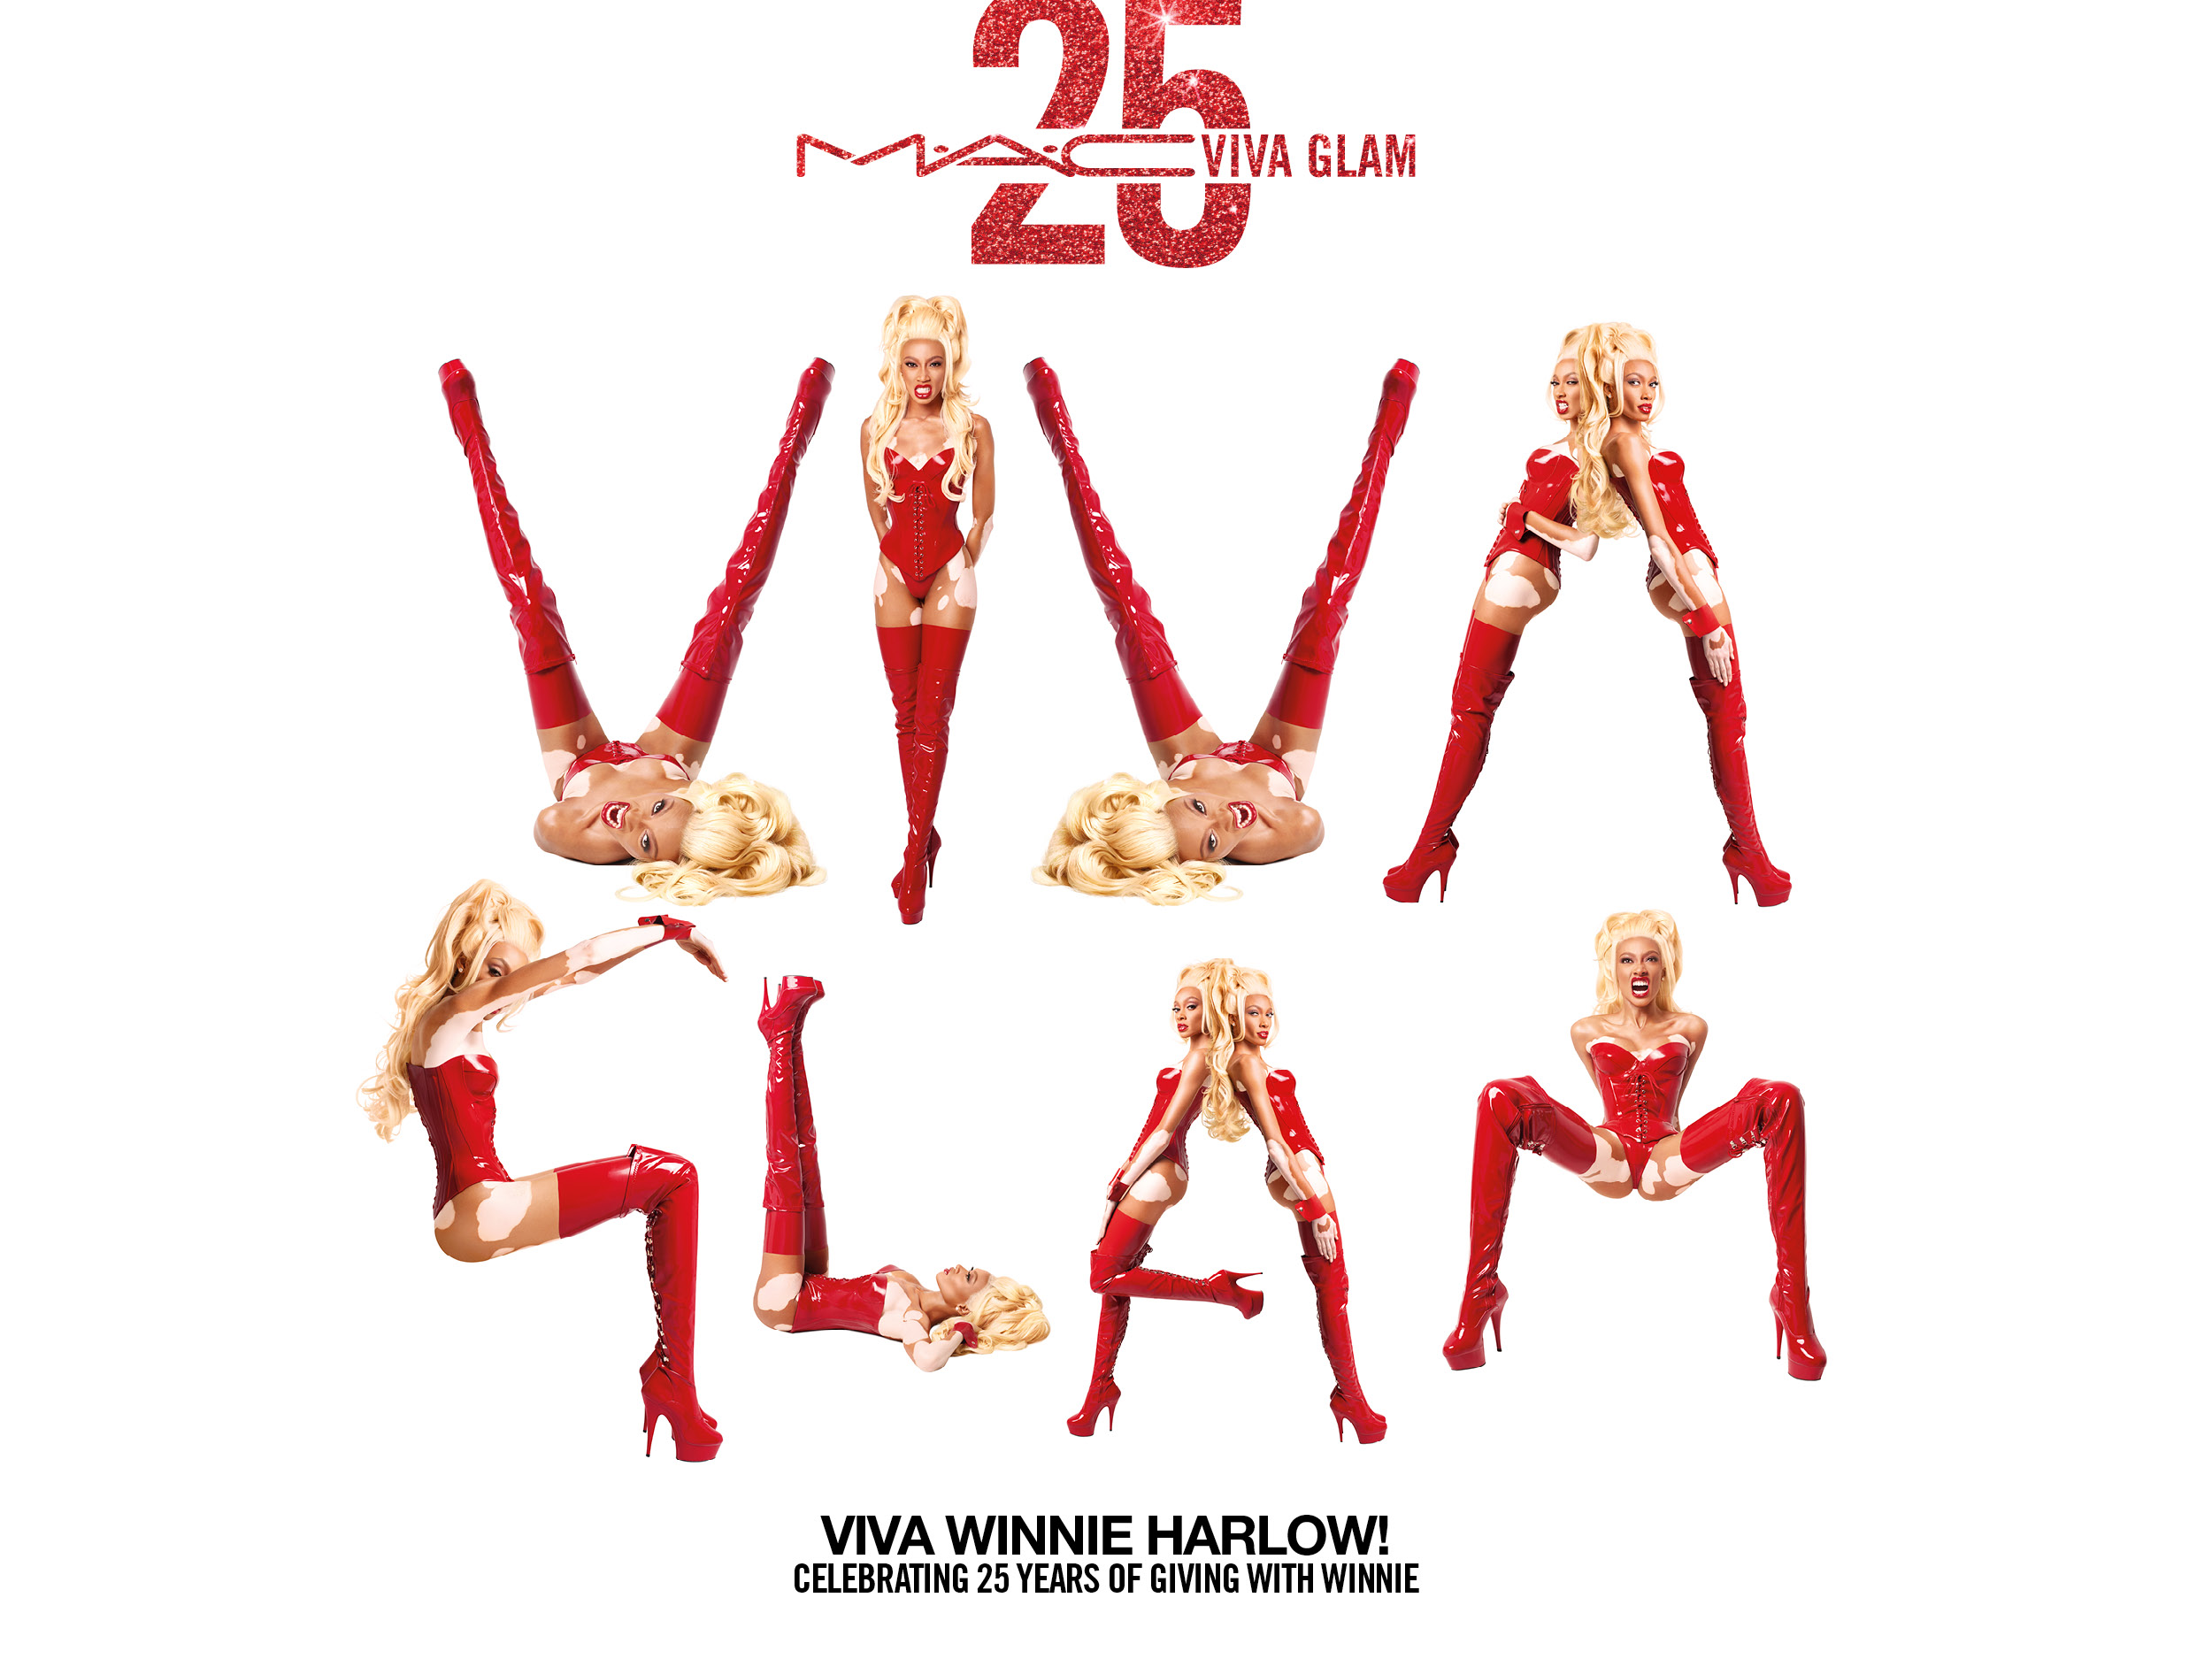 Winnie Harlow pays homage to RuPaul in her campaign for MAC's Viva Glam Fund.